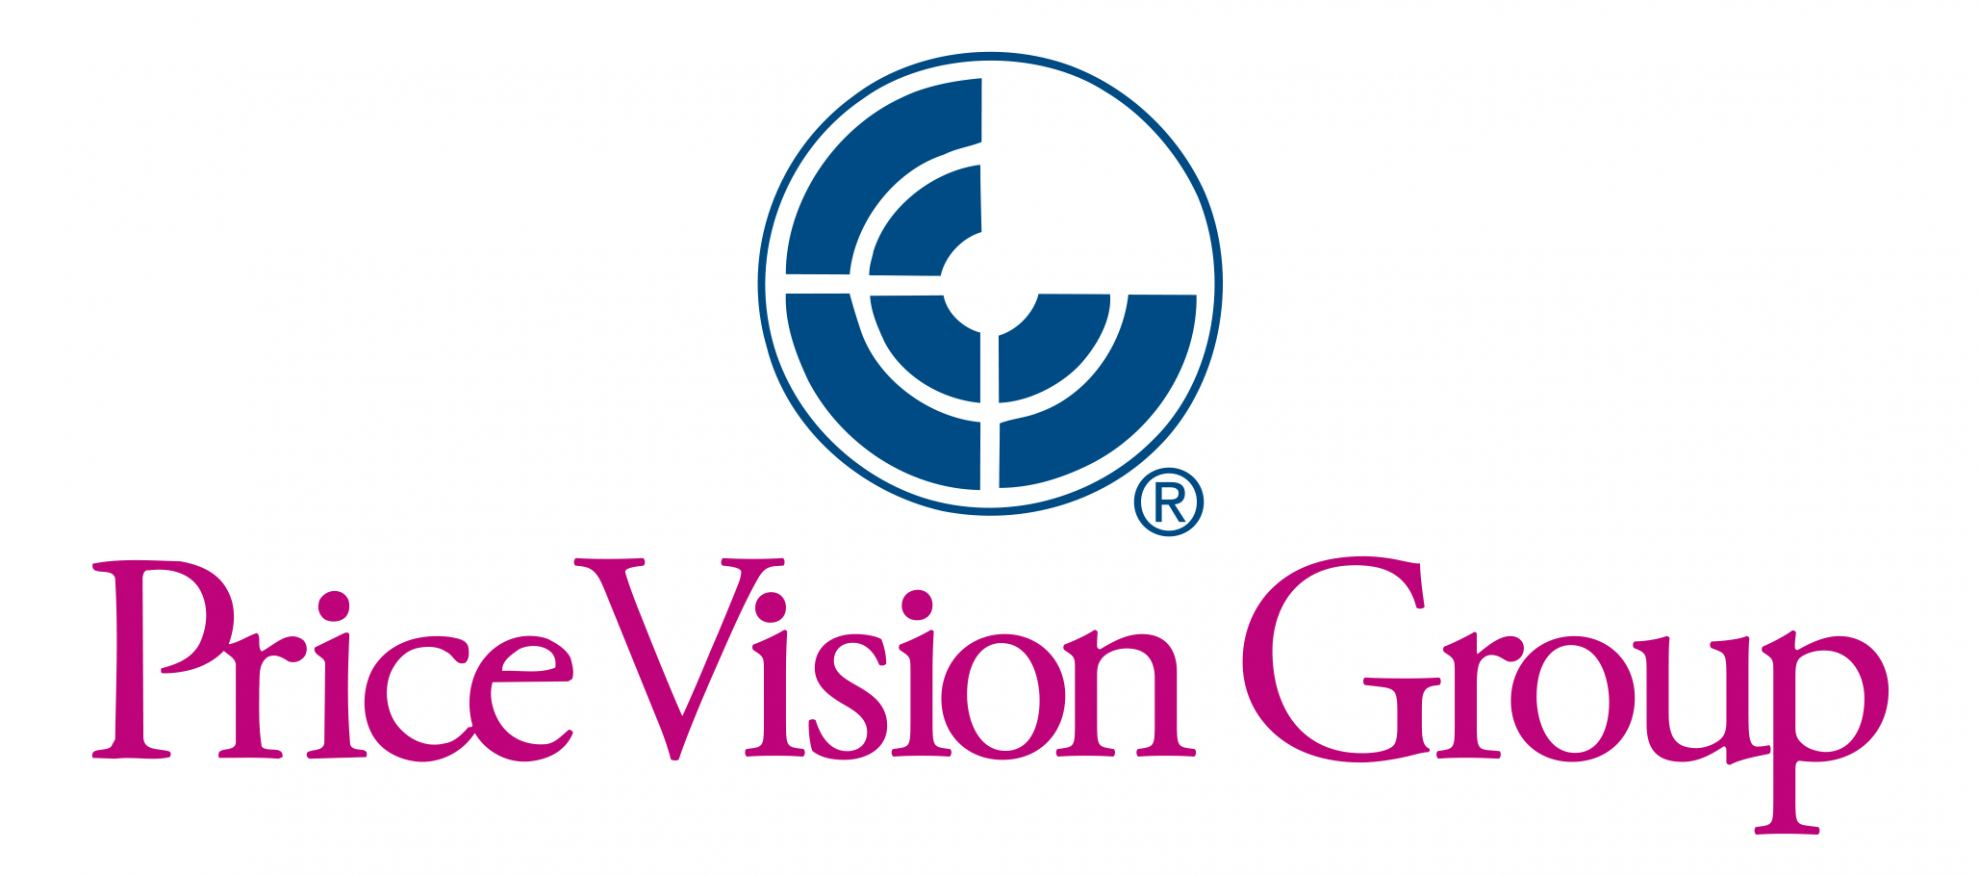 pricevisiongroup Logo